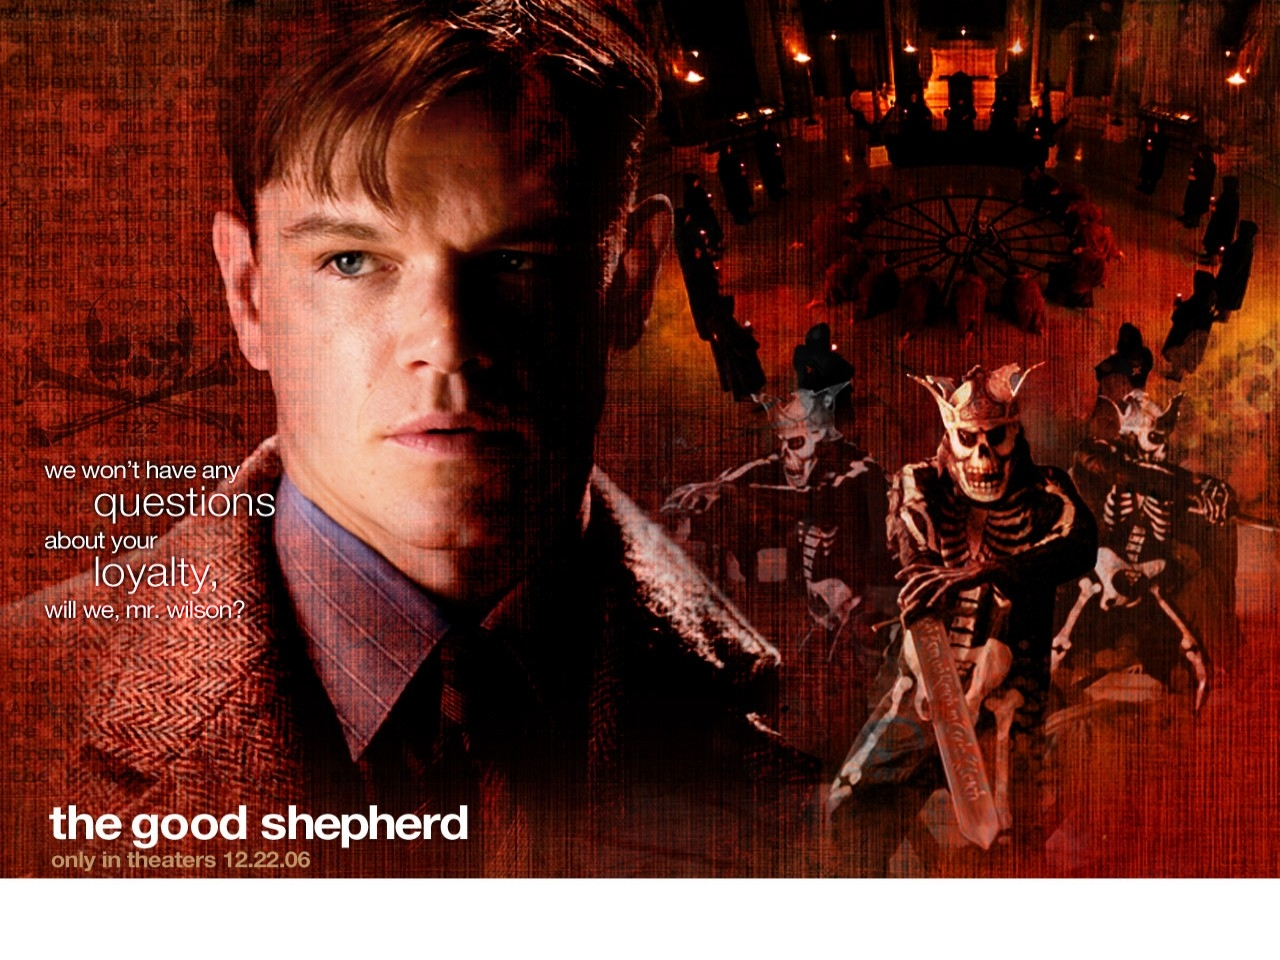 Wallpaper del film The Good Shepherd - L'ombra del potere con Matt Damon